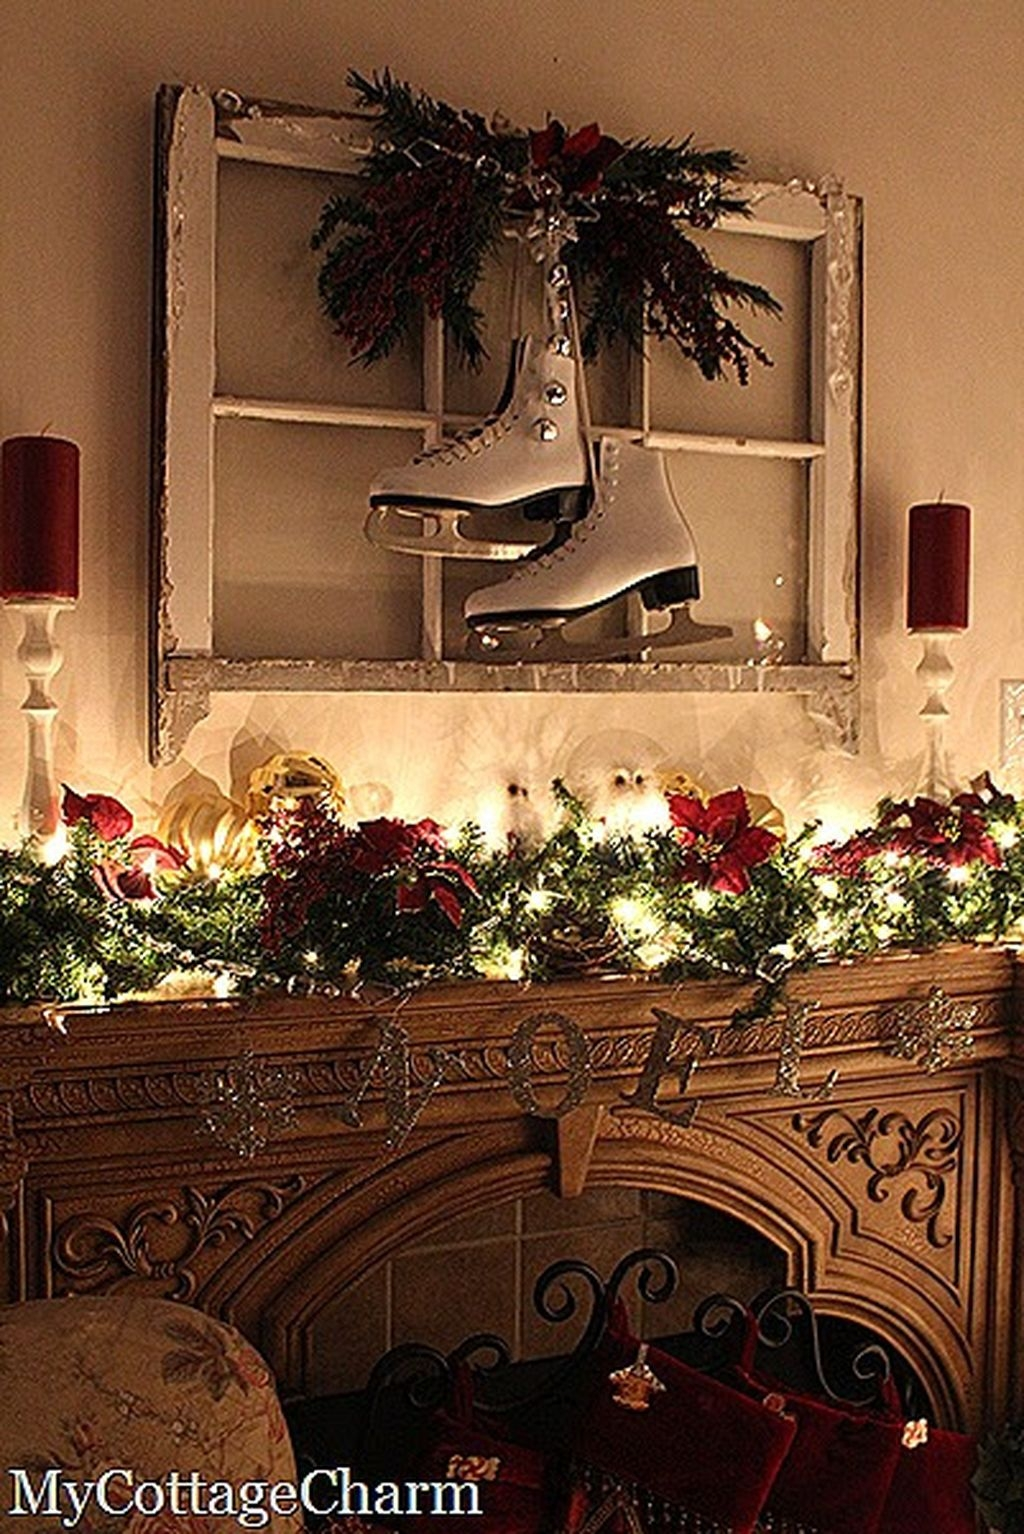 Cozy Fireplace Christmas Decoration Ideas To Makes Your Room Keep Warm27